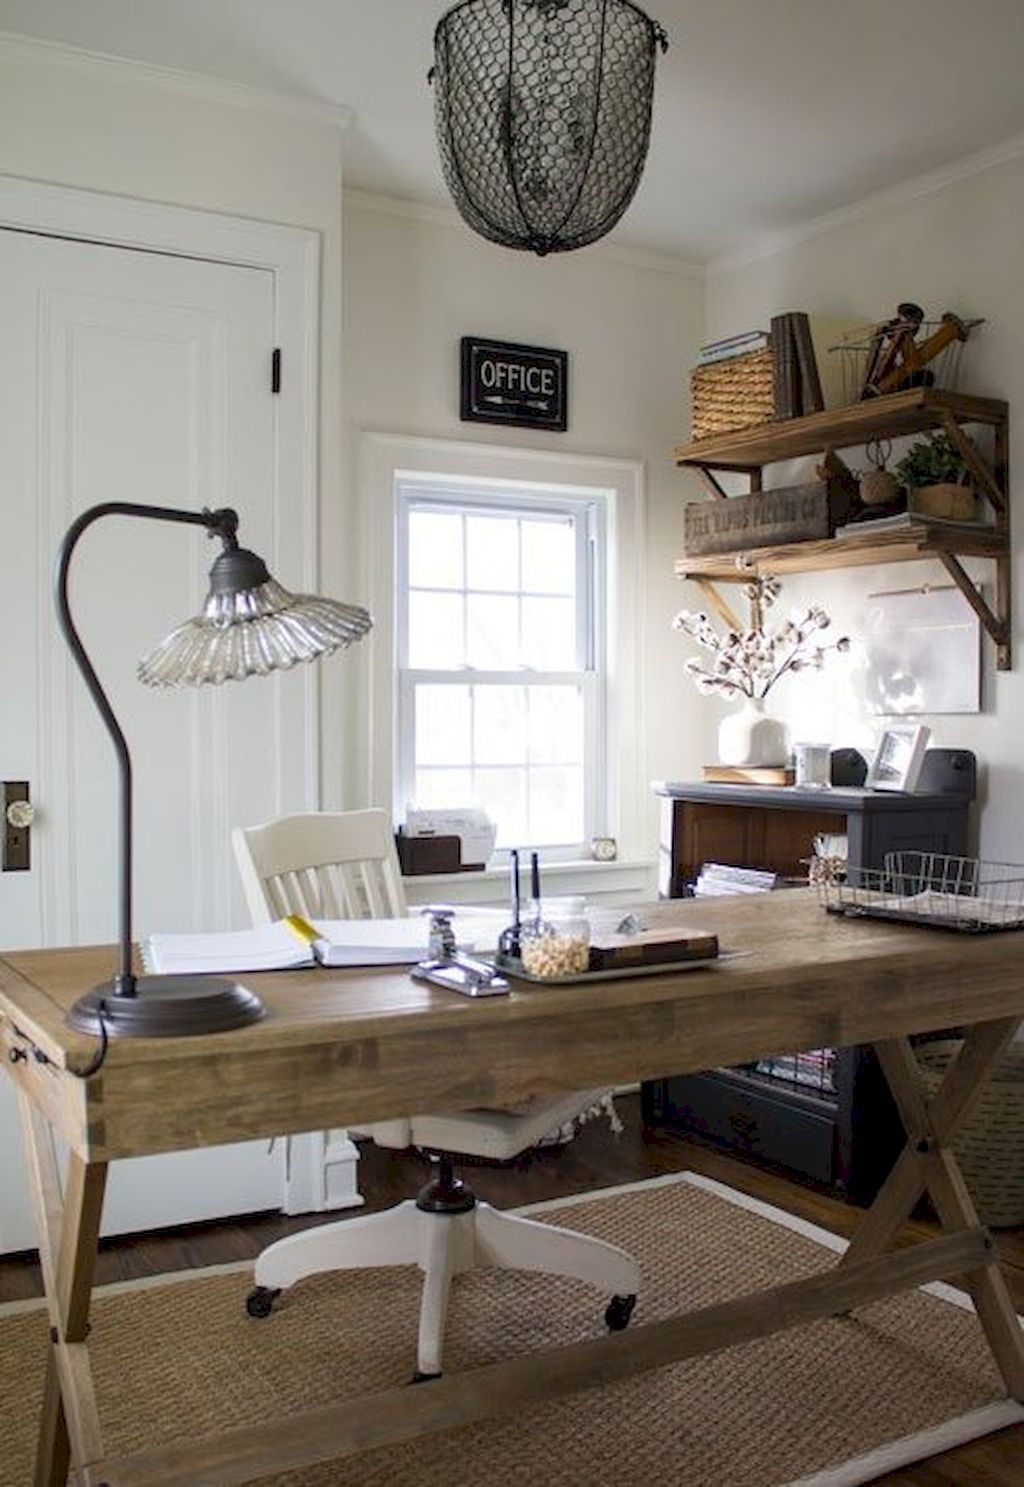 Home Office Furniture Home Office Decor Home Office Design: 40 Easy DIY Farmhouse Desk Decor Ideas On A Budget